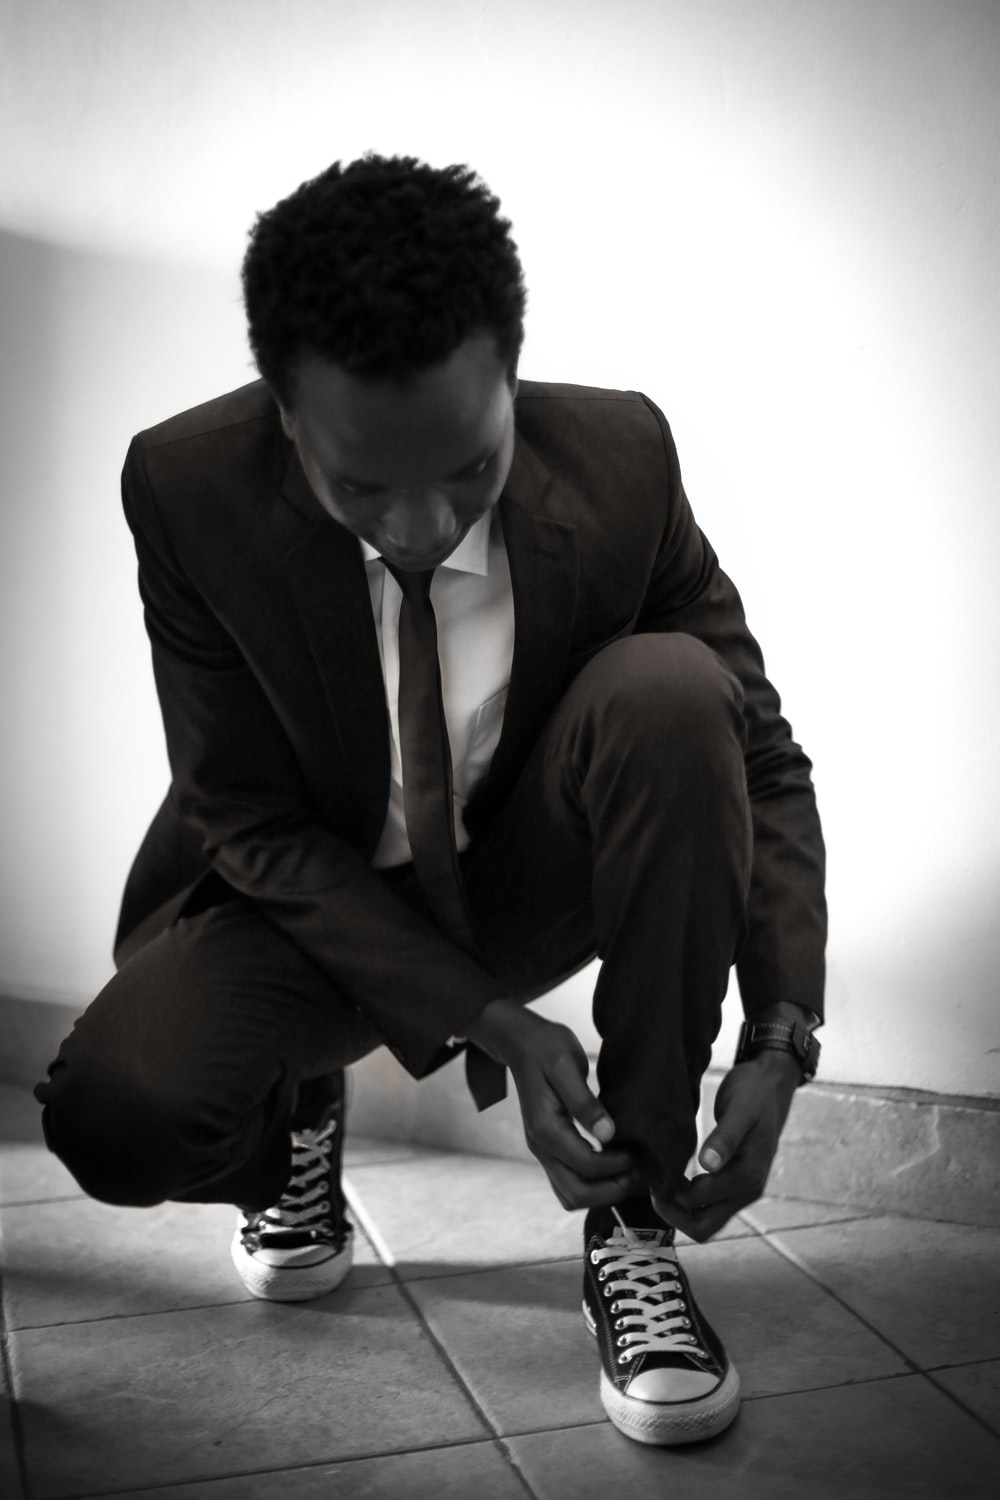 man tying his shoe lace